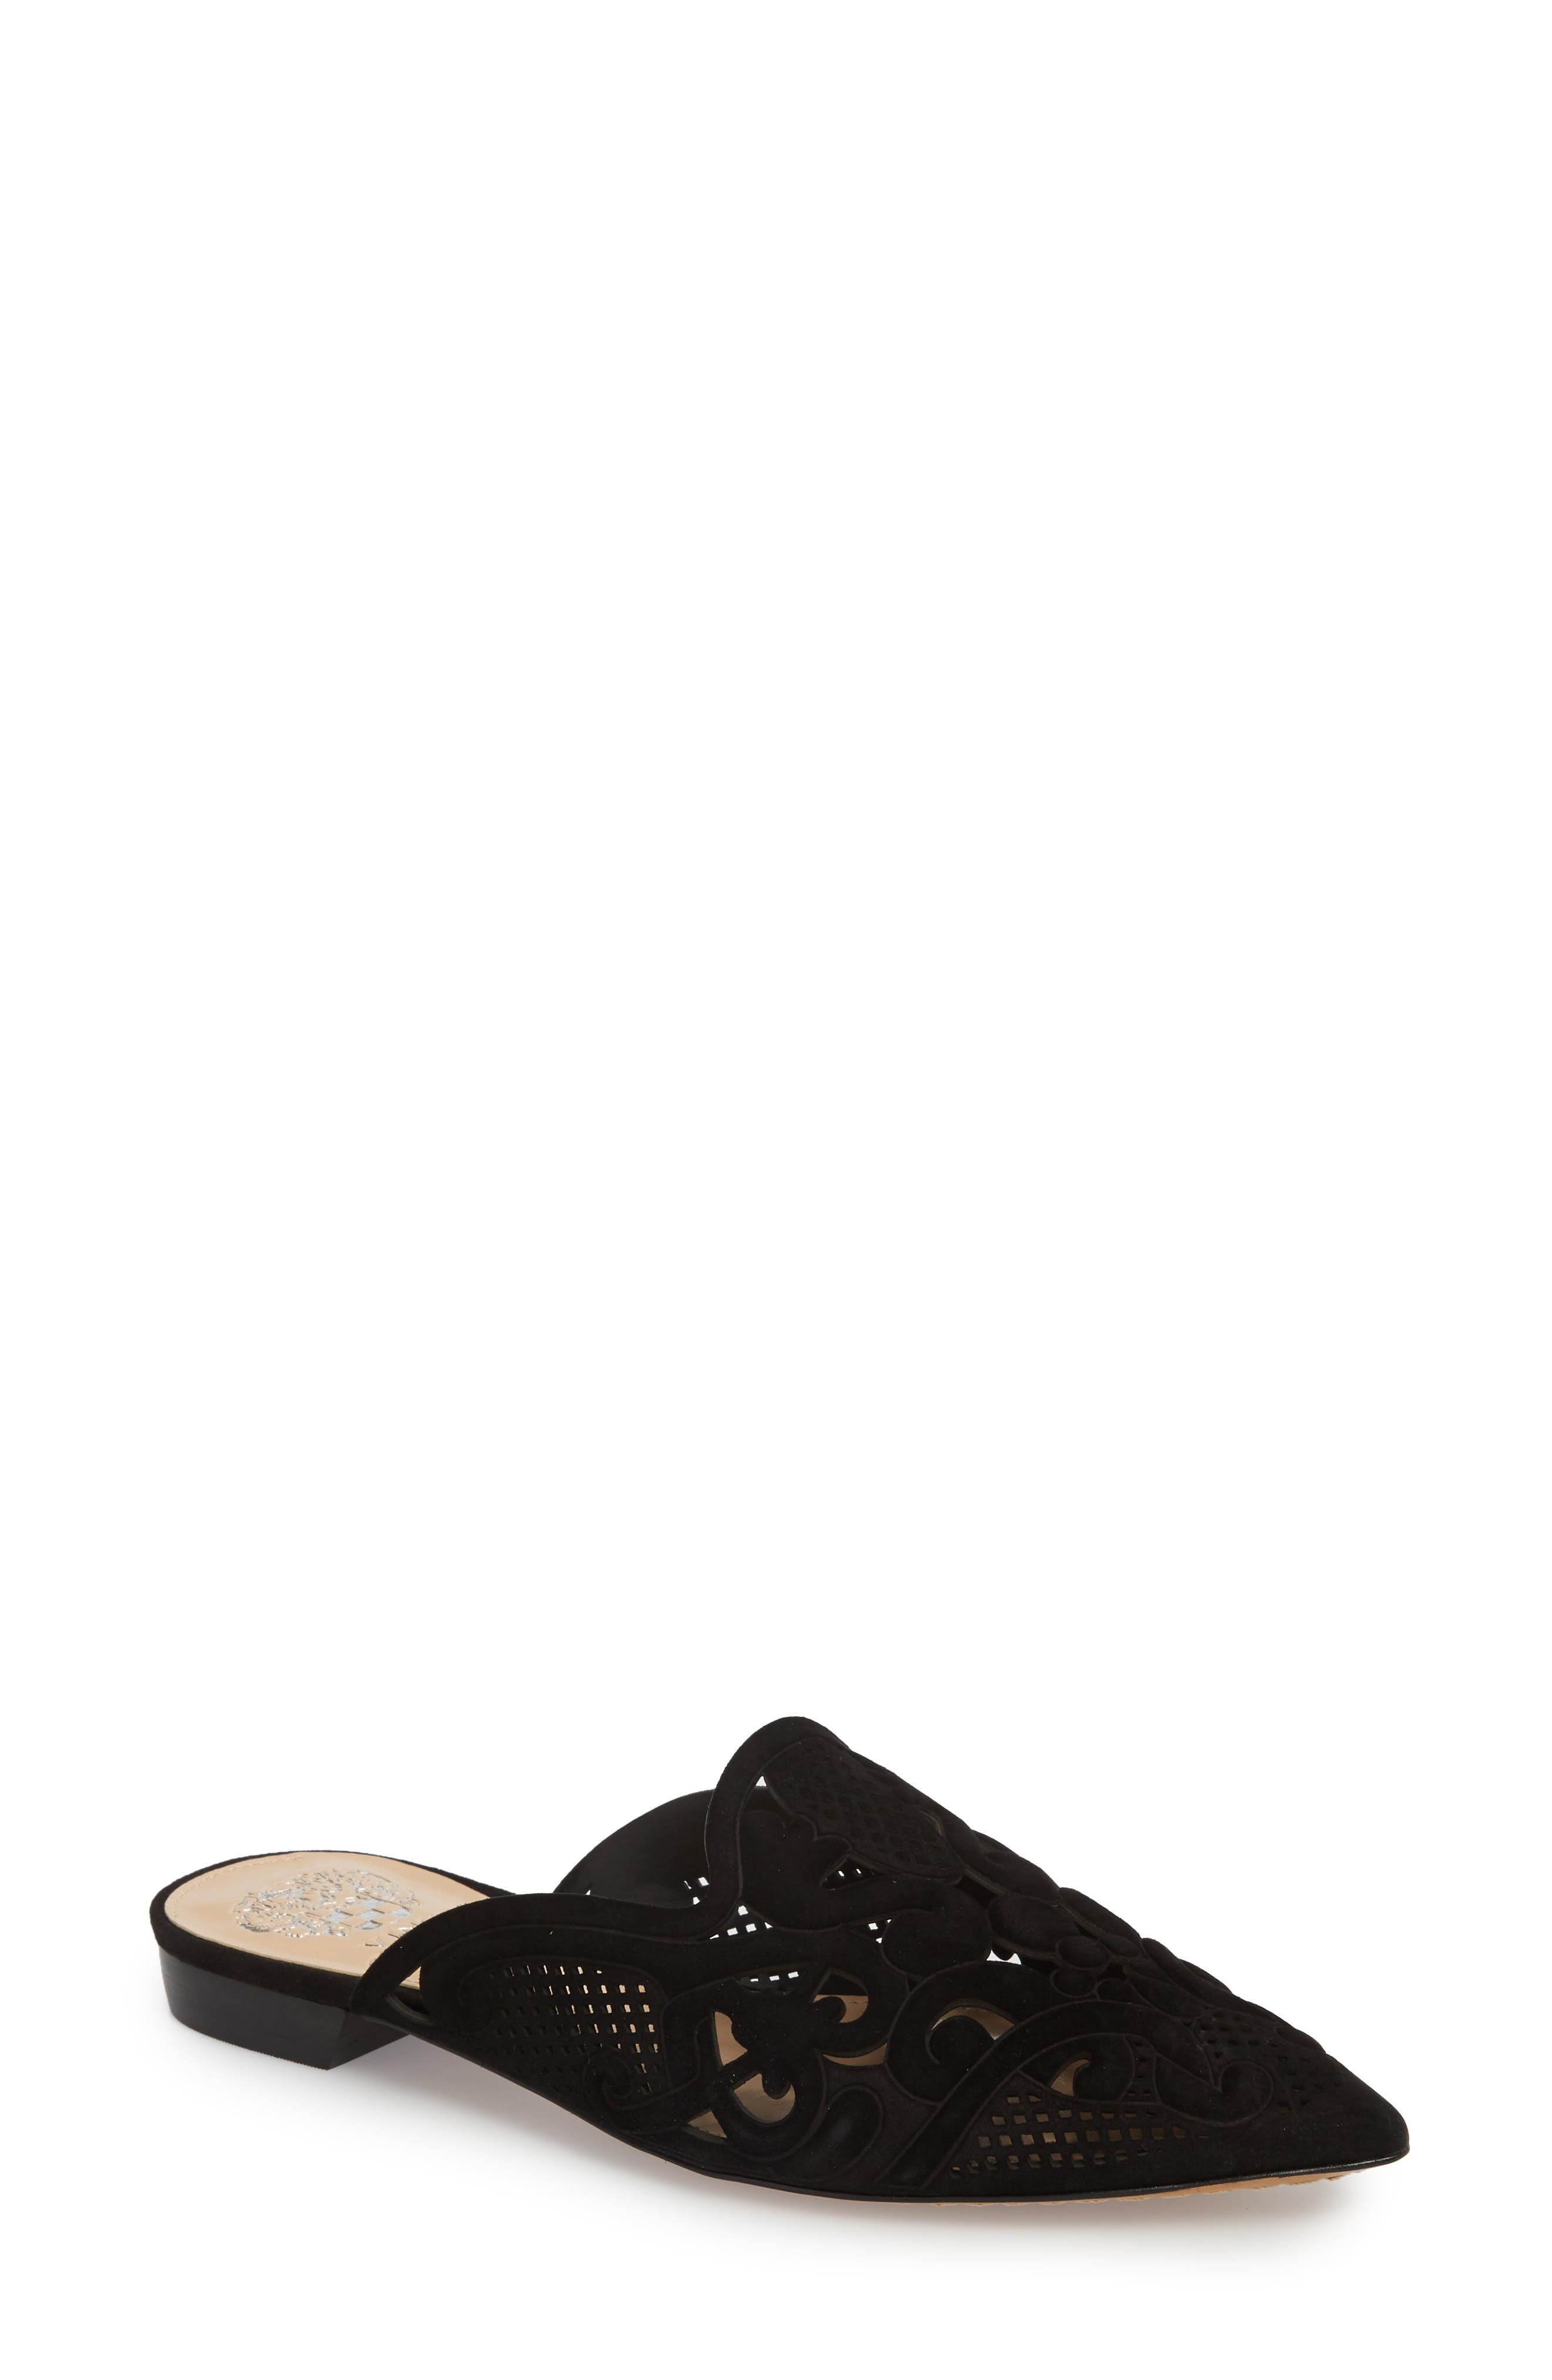 VINCE CAMUTO Meekel Pointy Toe Mule, Main, color, 001